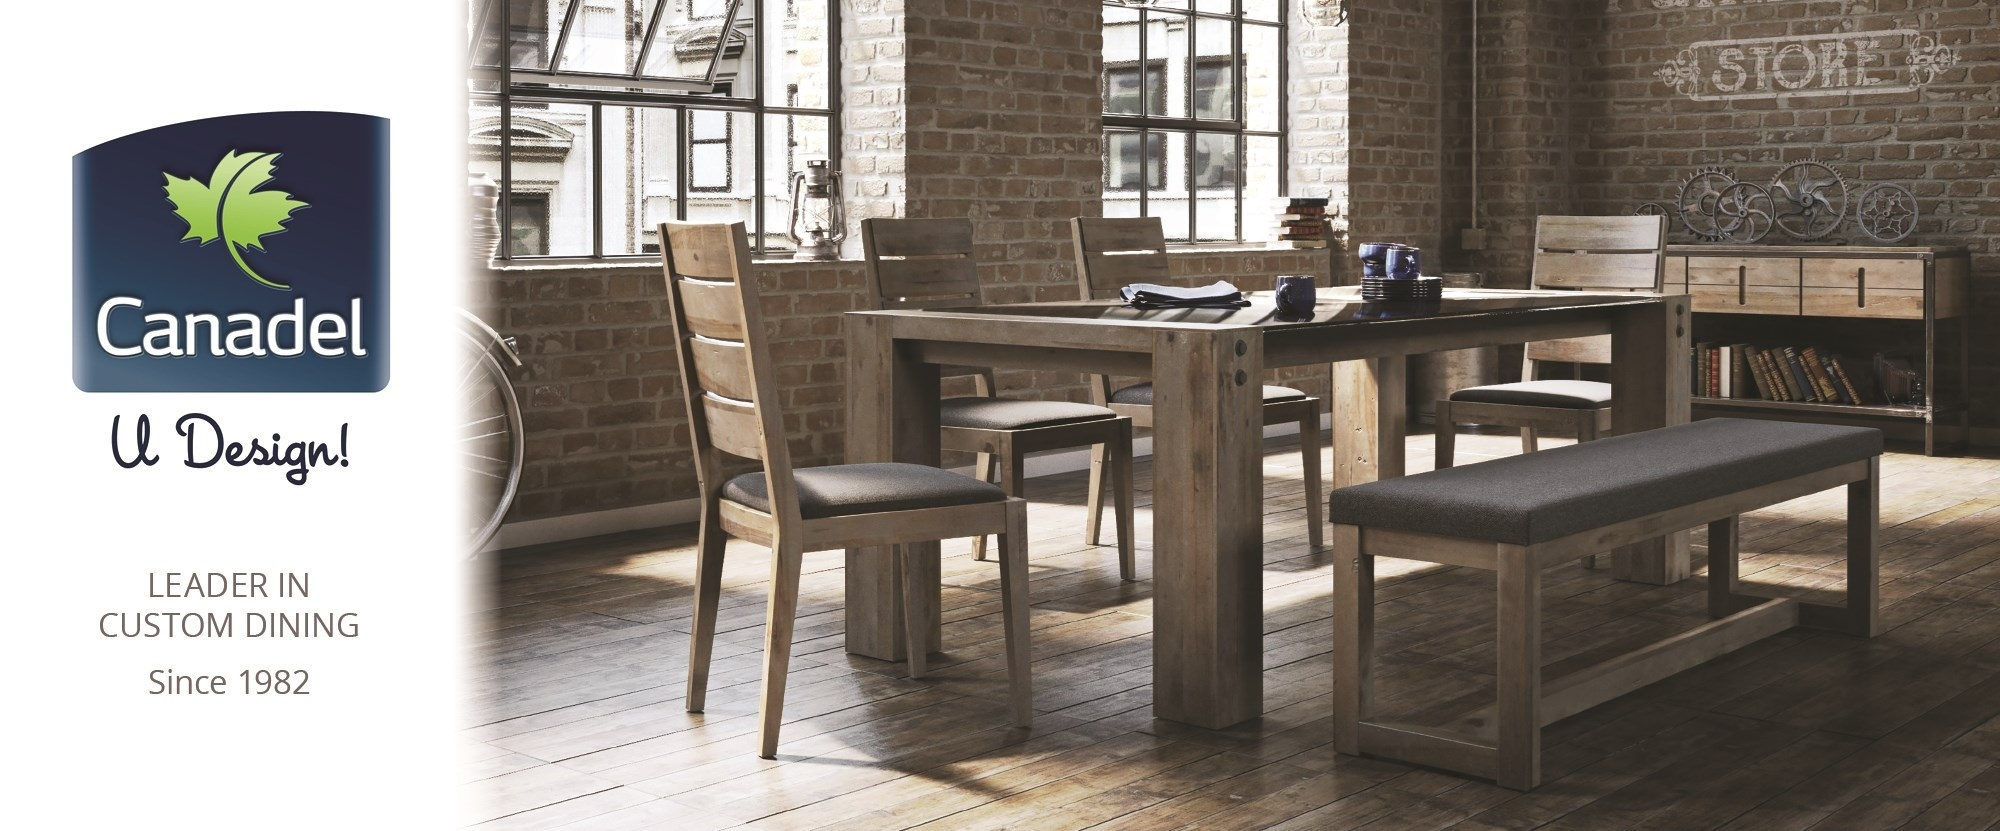 Canadel Custom Dining Furniture At Darvin Furniture – Orland Park Throughout Current Market 6 Piece Dining Sets With Host And Side Chairs (Image 7 of 20)